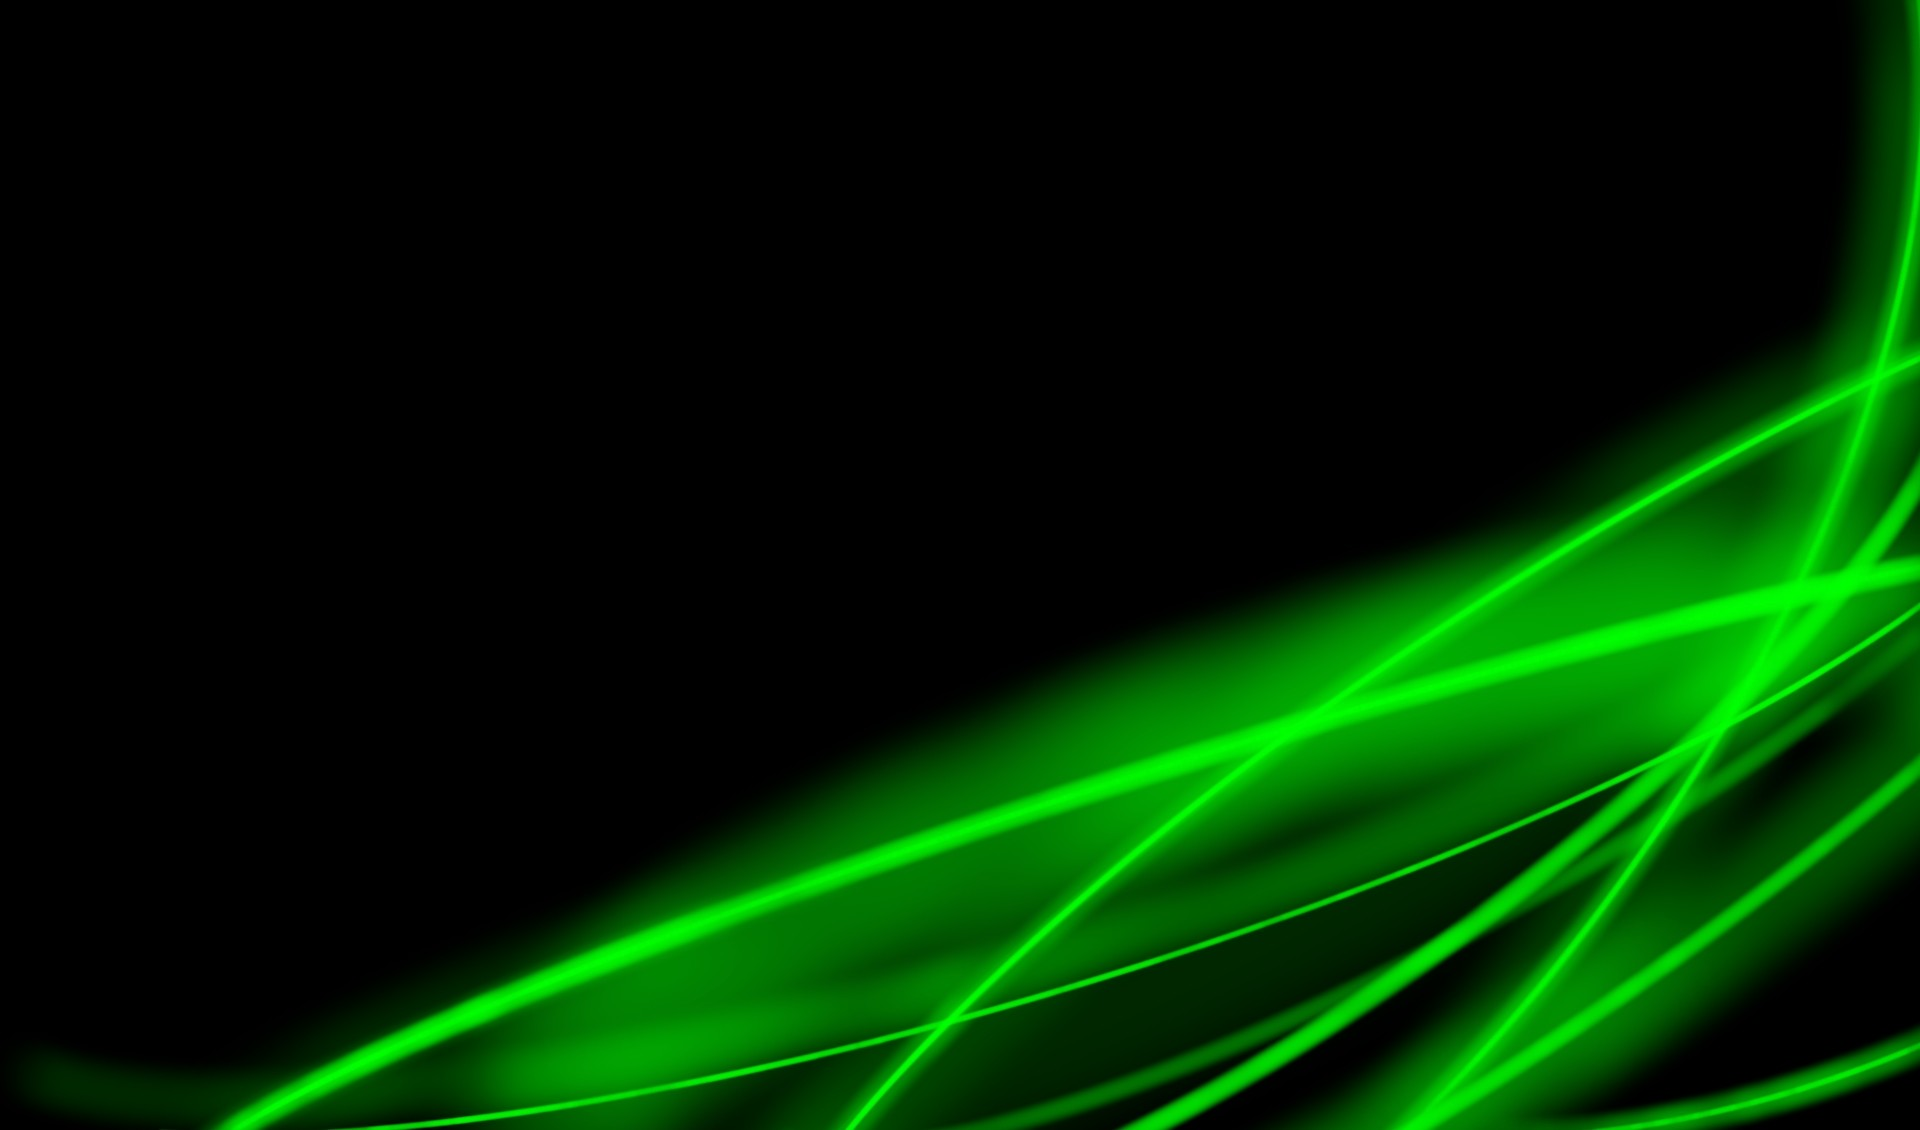 1920x1080 Green Abstract Wallpaper By Br8y16 Customization